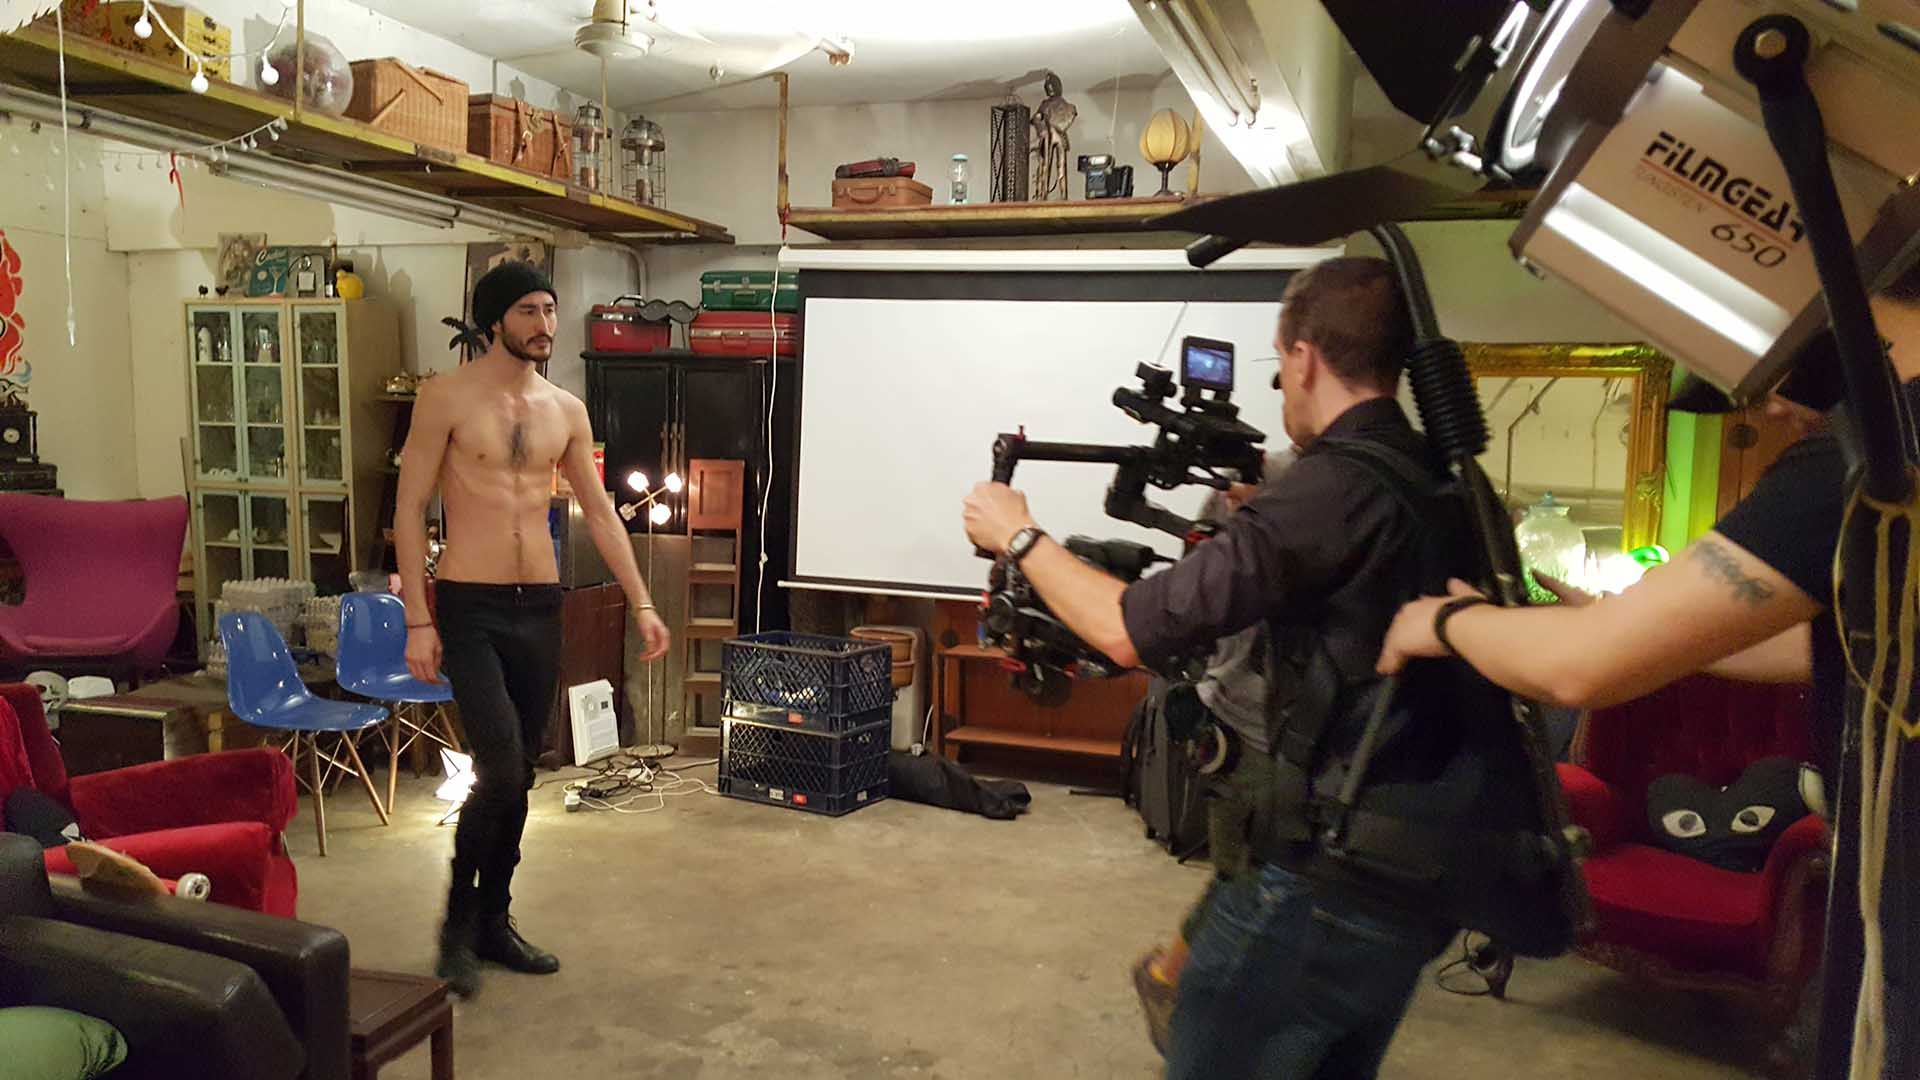 Behind the scenes shot of a cameraman using a Ronin to film a male model.